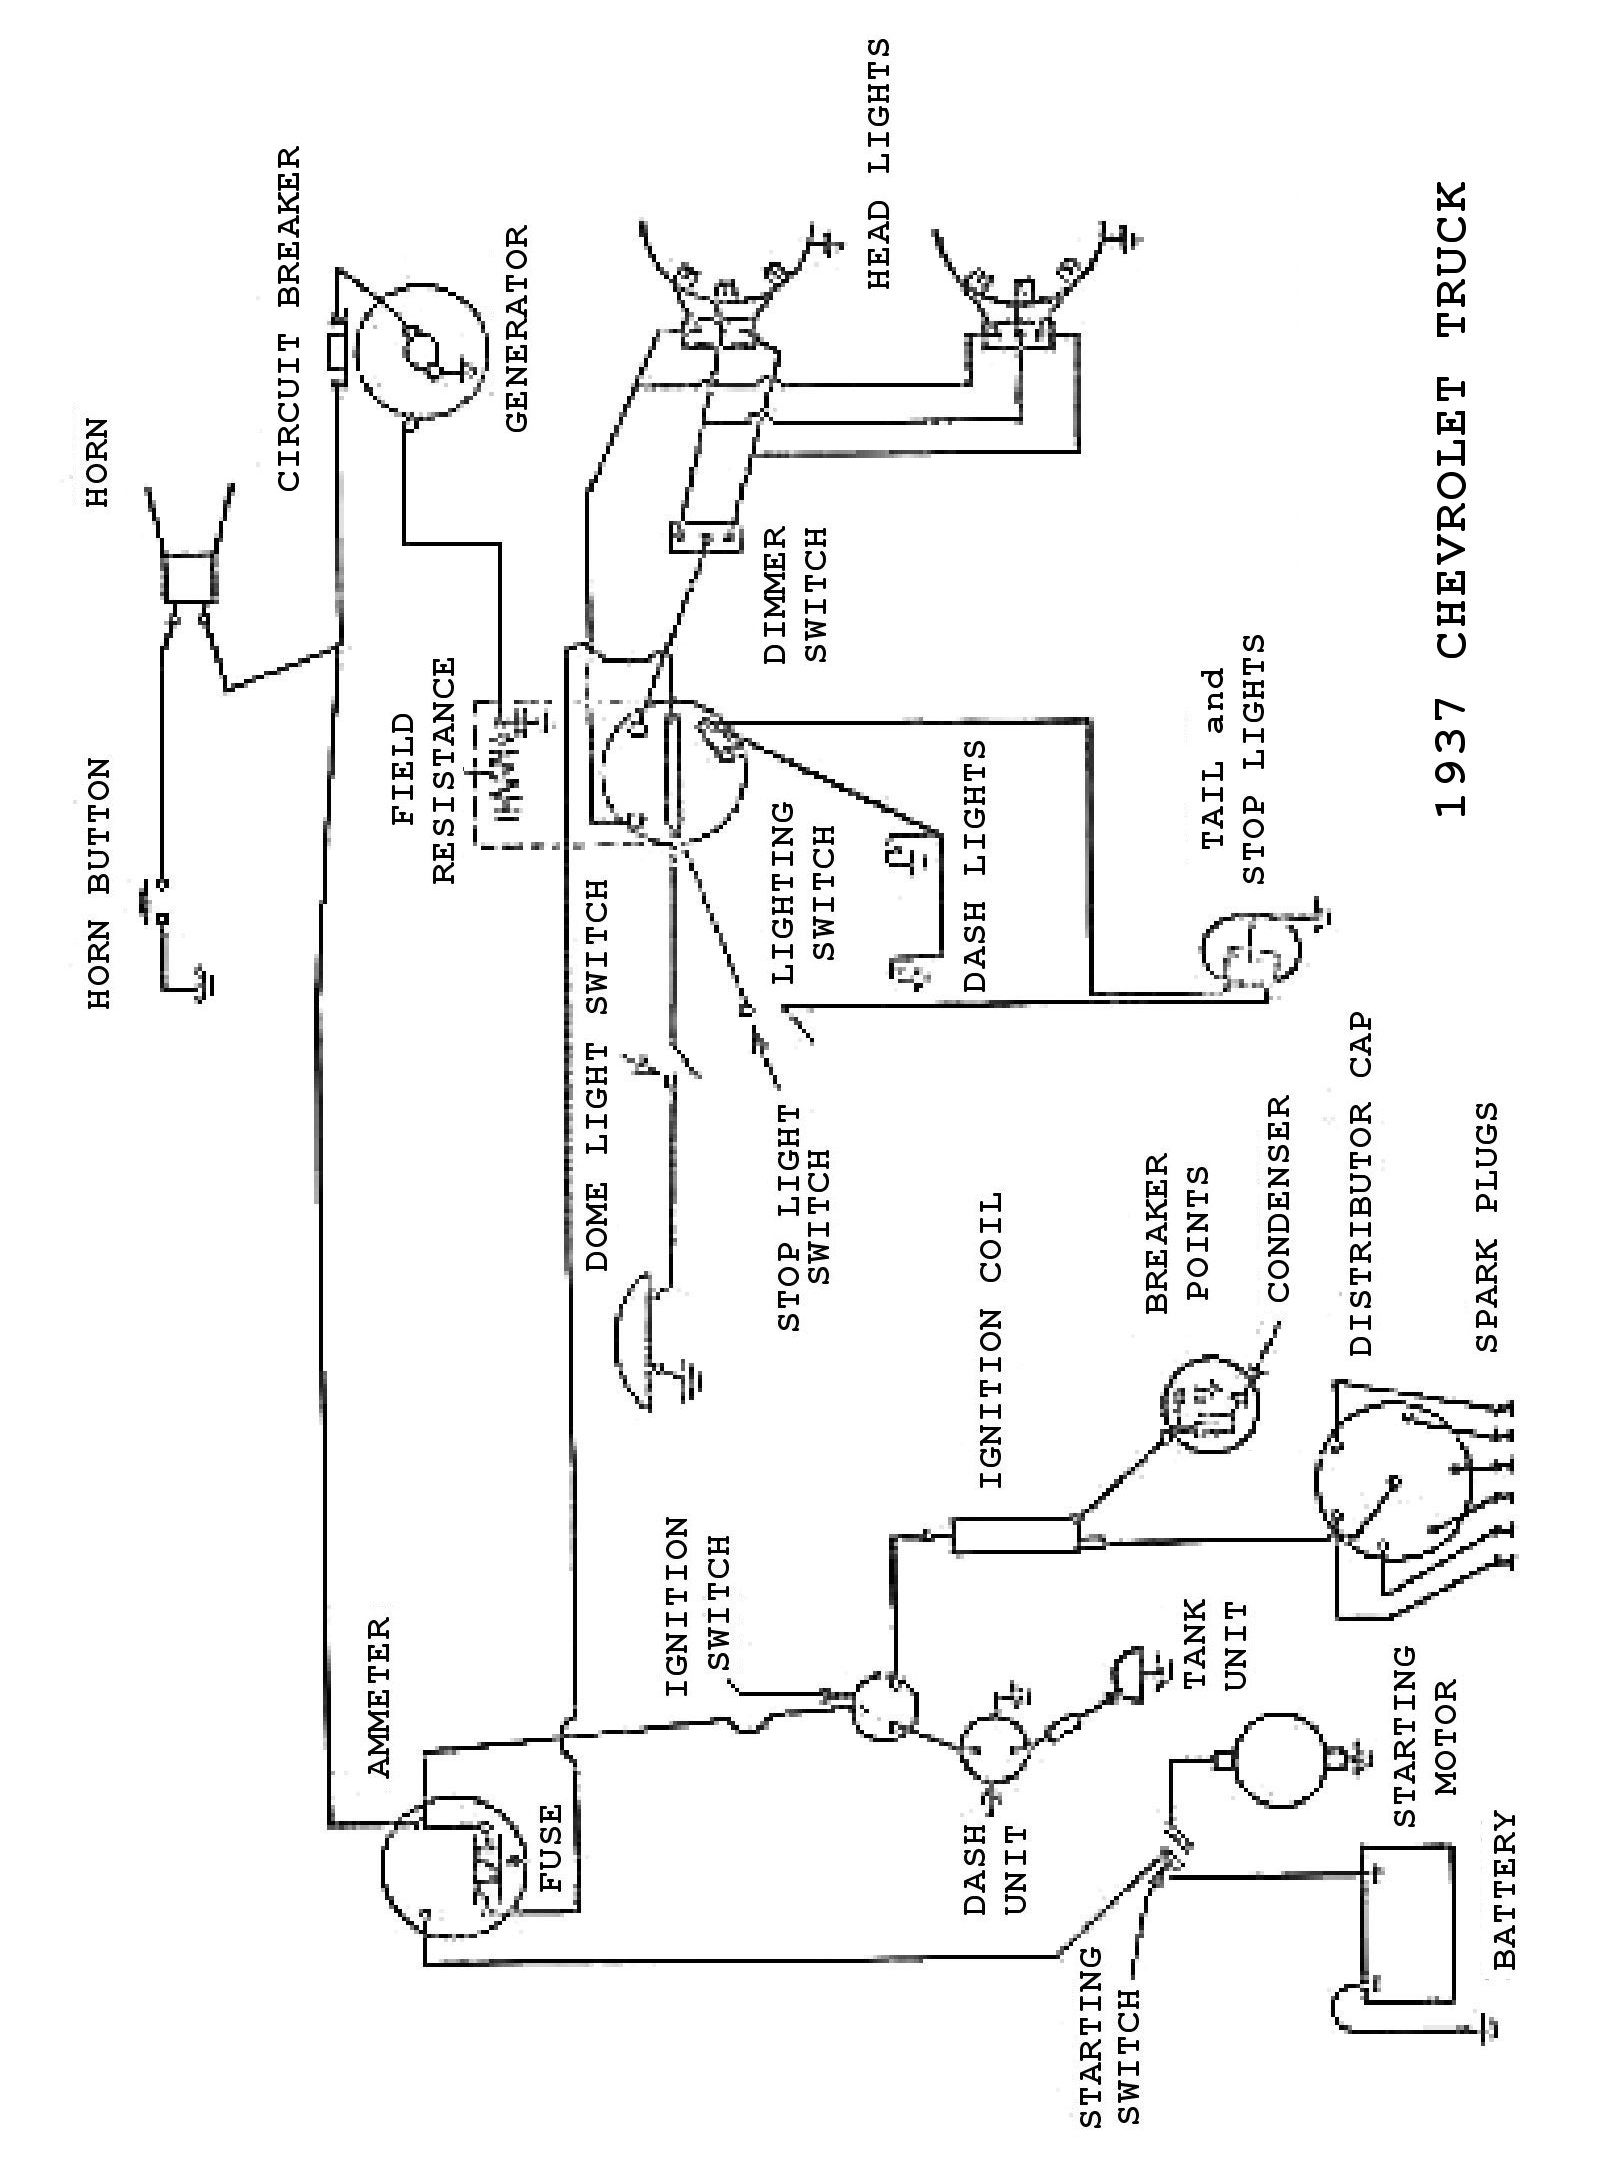 37truck wiring diagram for a 1937 chevy truck wiring diagram simonand 66 Chevy Headlight Switch Wiring Diagram at readyjetset.co